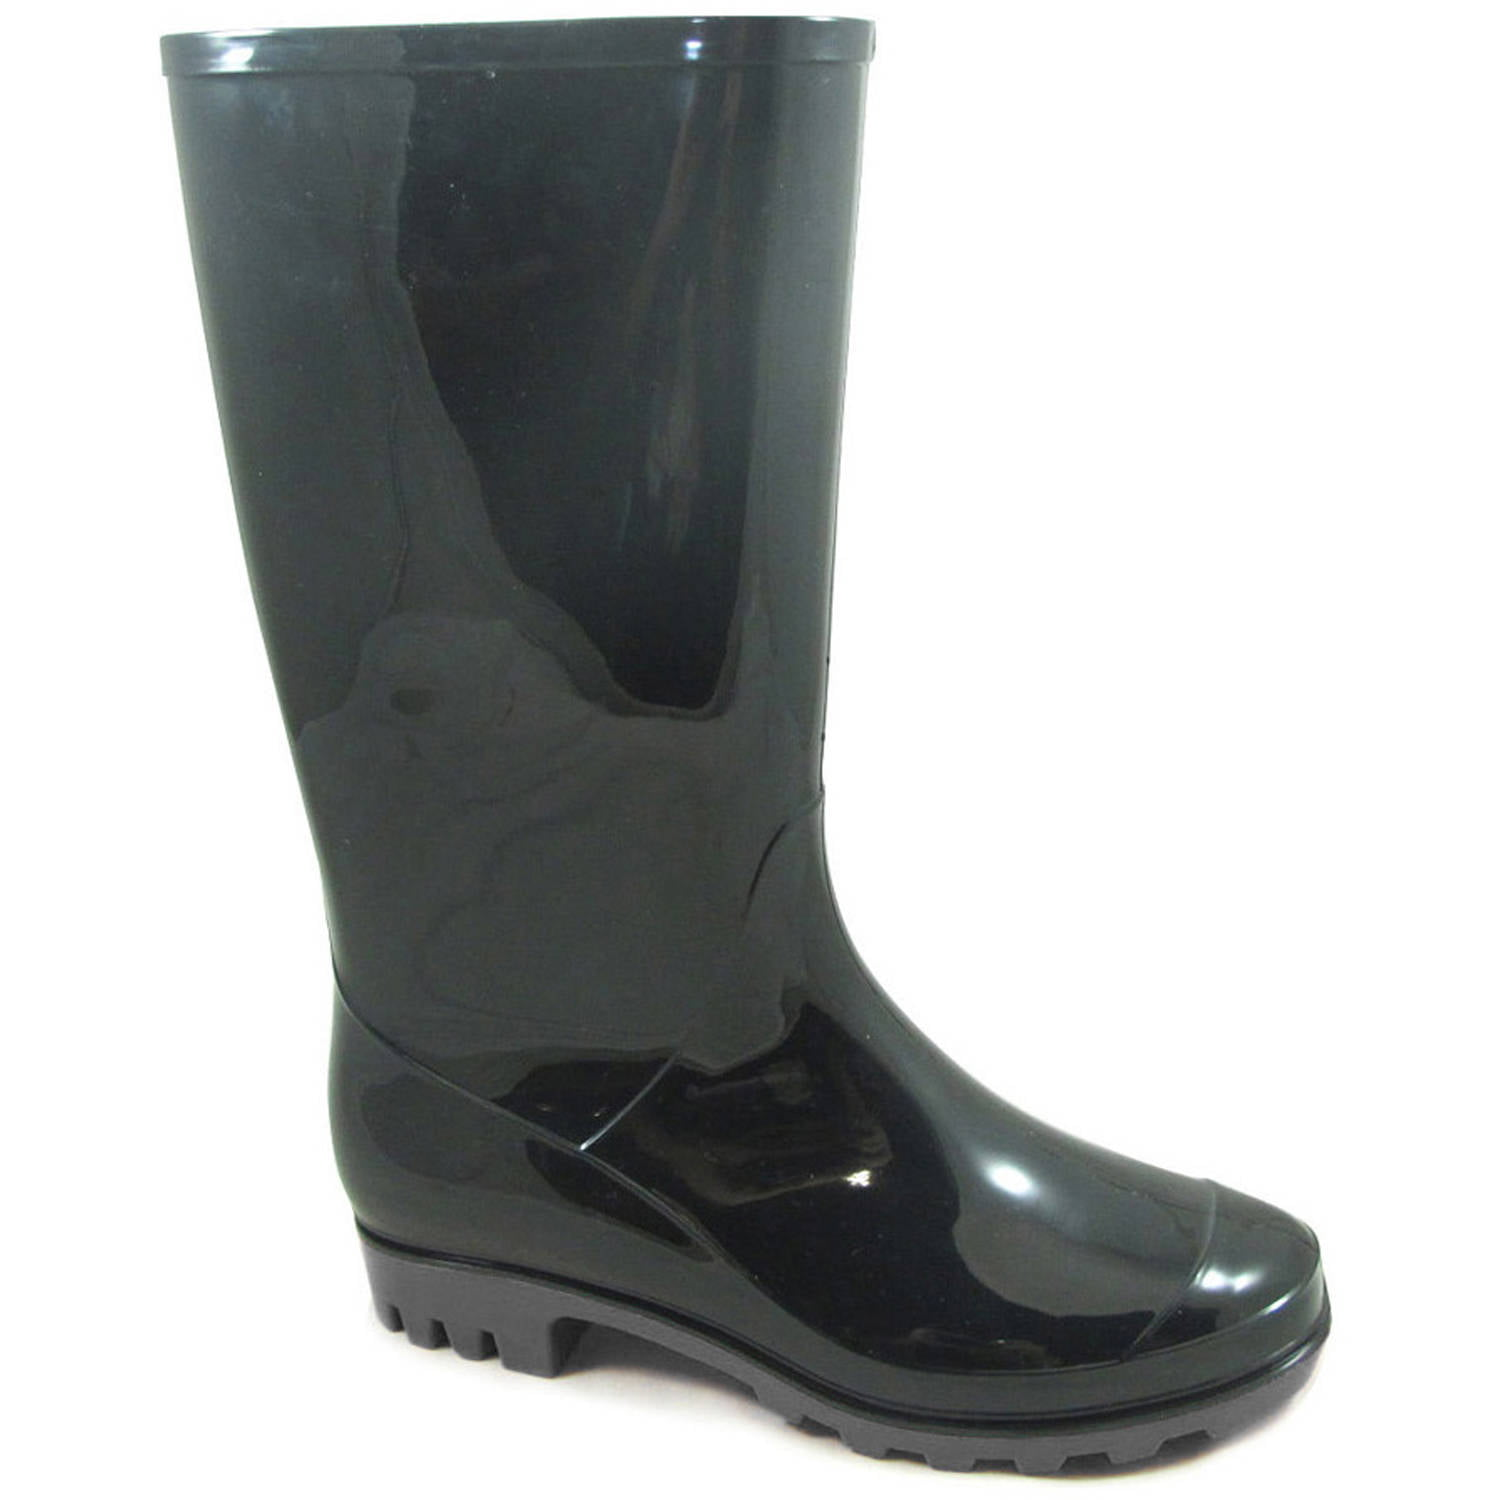 Women's Solid Black PVC Boot - Walmart.com